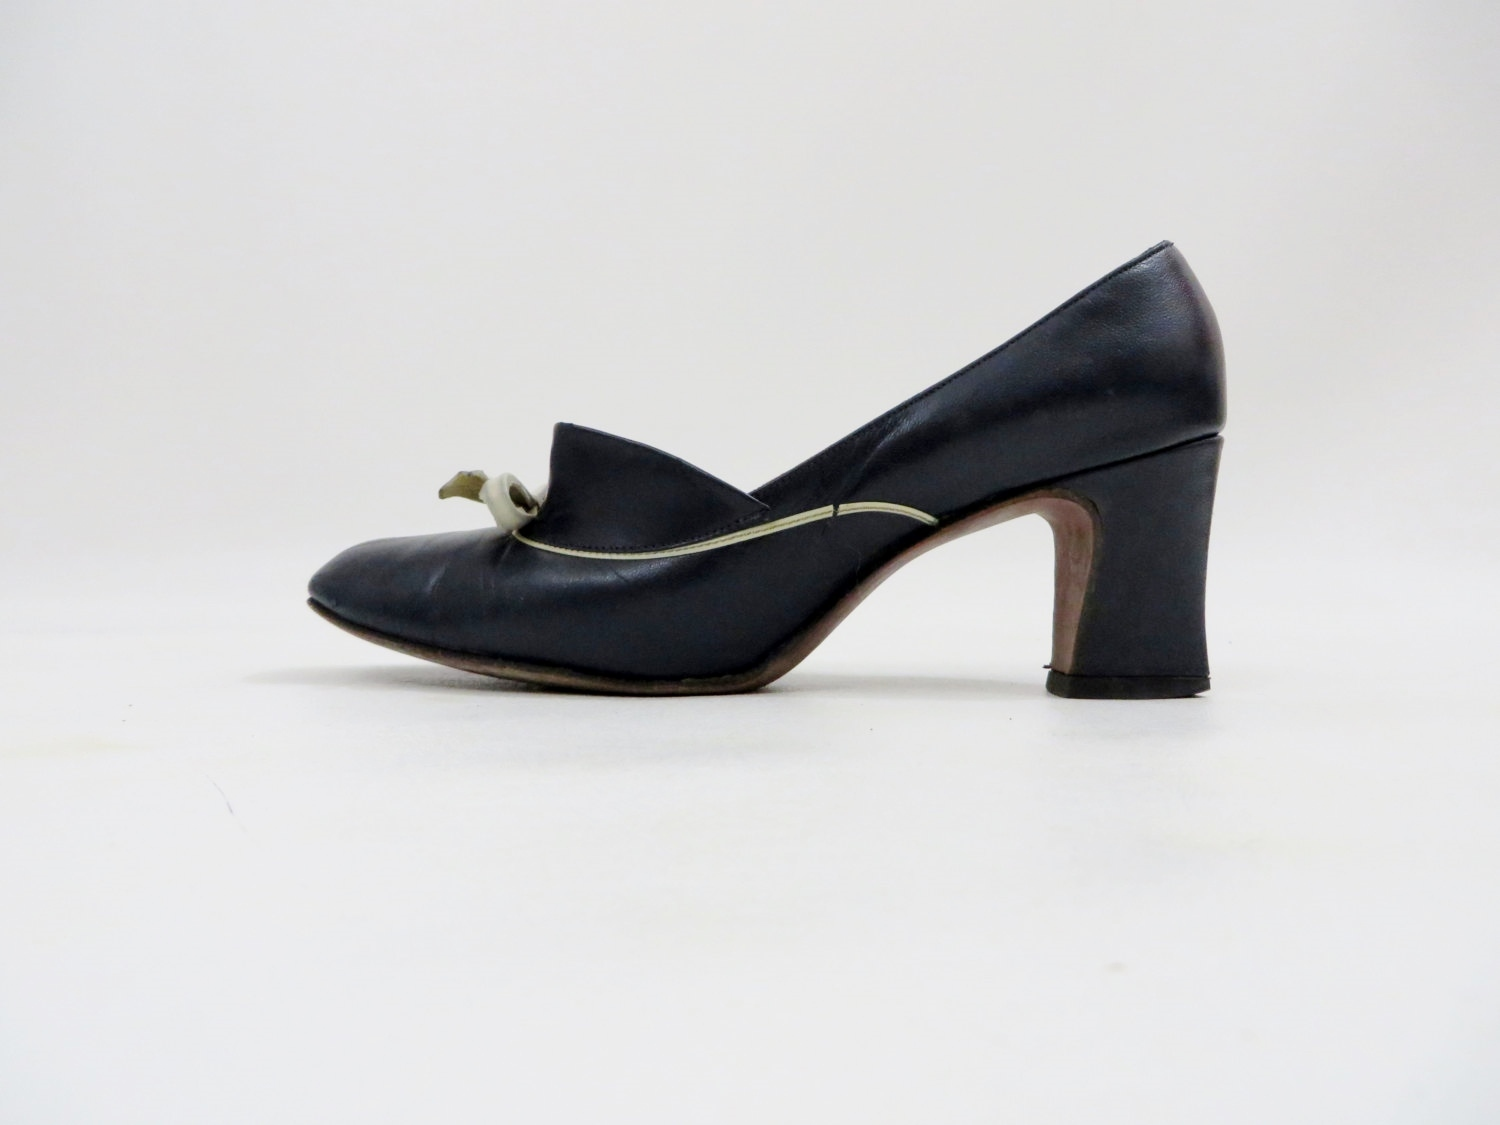 1960's mod leather shoes by Christina of Copenhagen, size 6 B